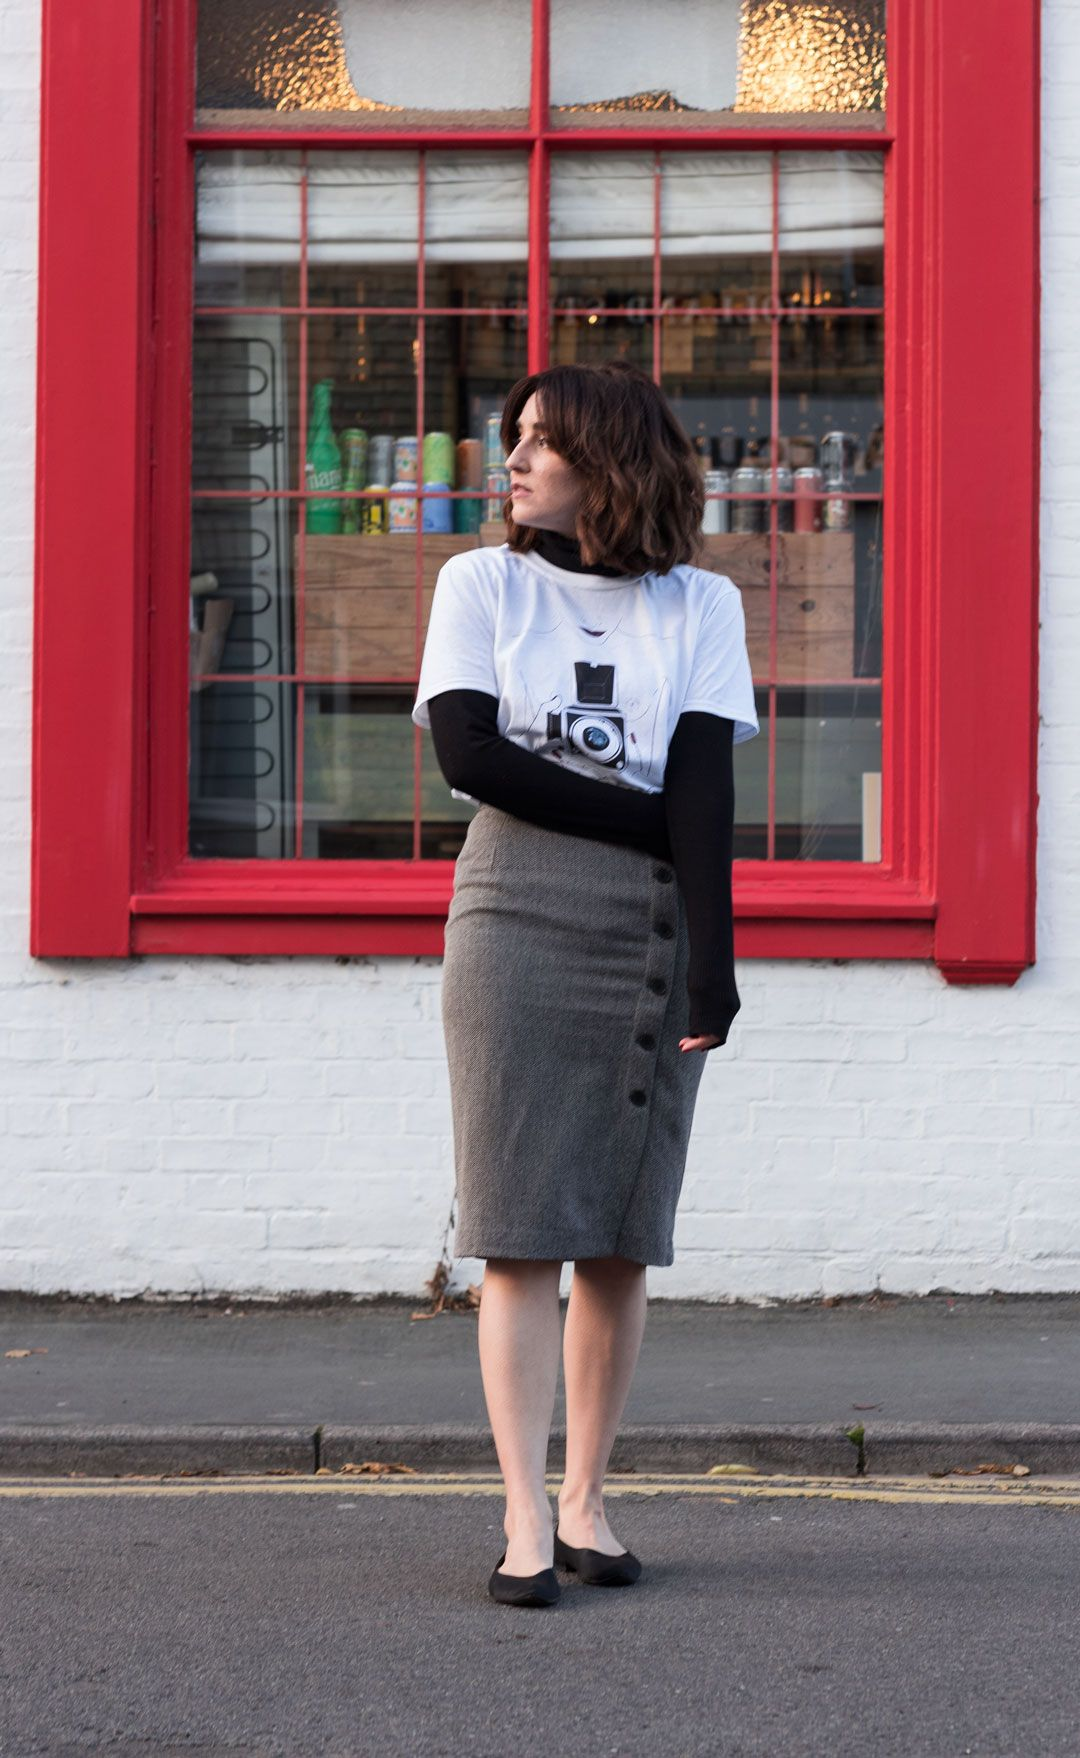 The feminist tee you need in your wardrobe   White printed tee   Teresa Pon La Mesa Drawings   #effortlesschic   #casualchic   #herringbone #pencilskirt   Classic black coat   Pointed flats   #winterfashion   #falllook   #autumnlook   Independent artists in fashion   #cottontshirt   How to wear a printed tee in a classy way   She talks Glam   Saida Antolin   #UKblogger   #kneelengthskirt   #classyoutfit   #parisianstyle   white tee